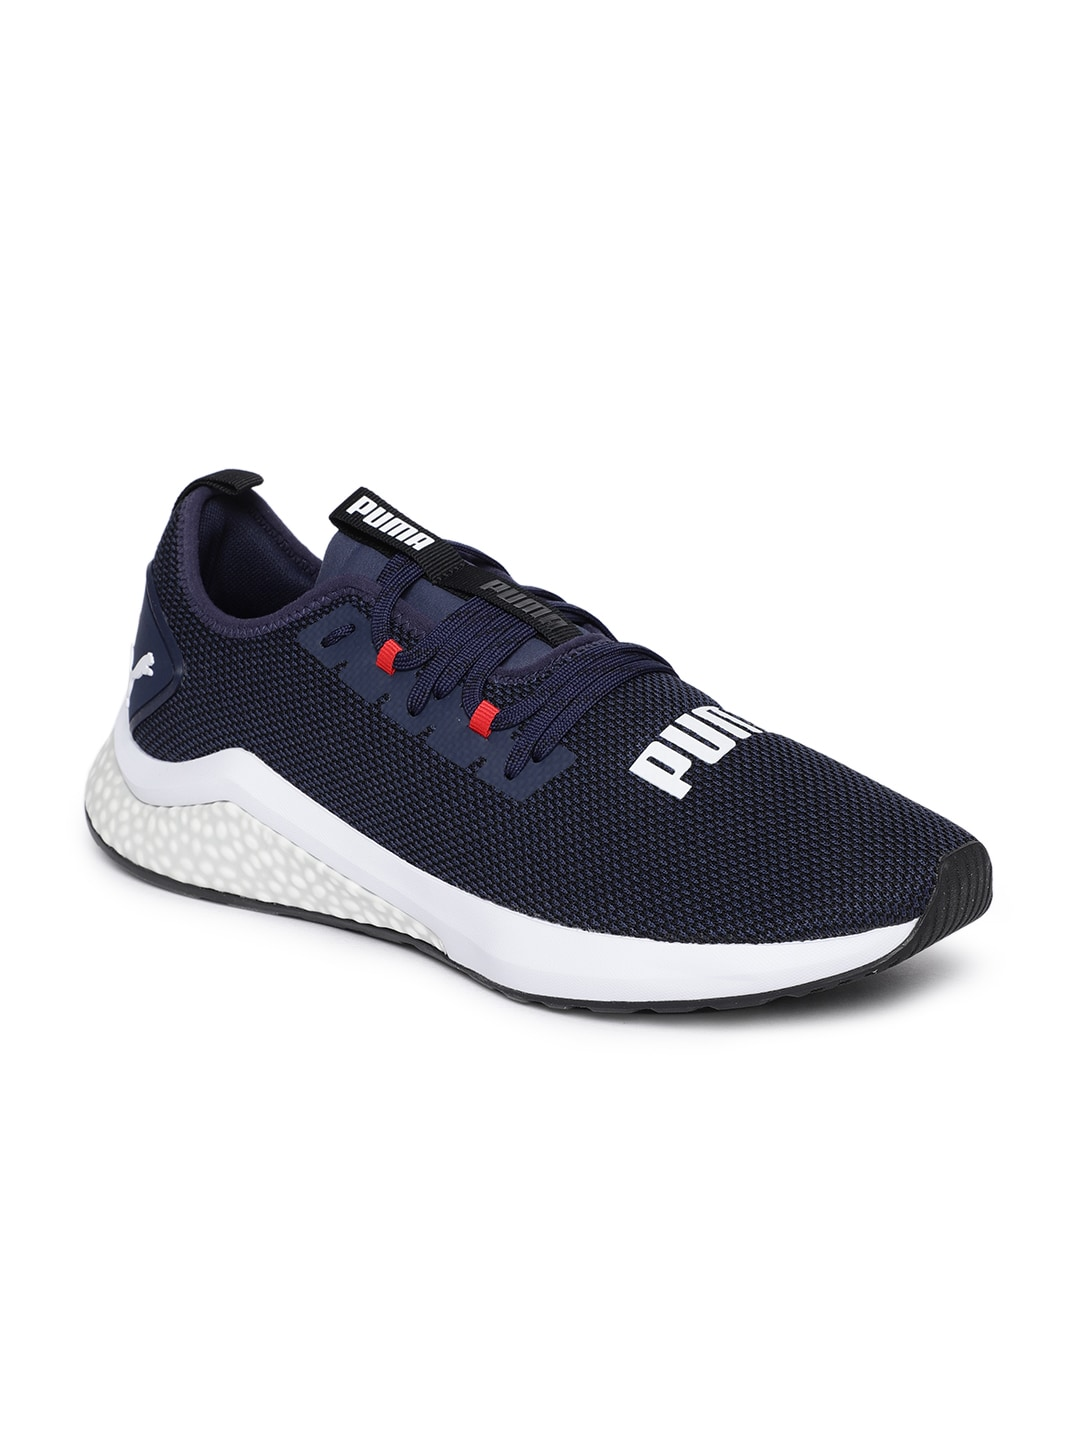 78abd2a51b1325 Puma Sports Shoes